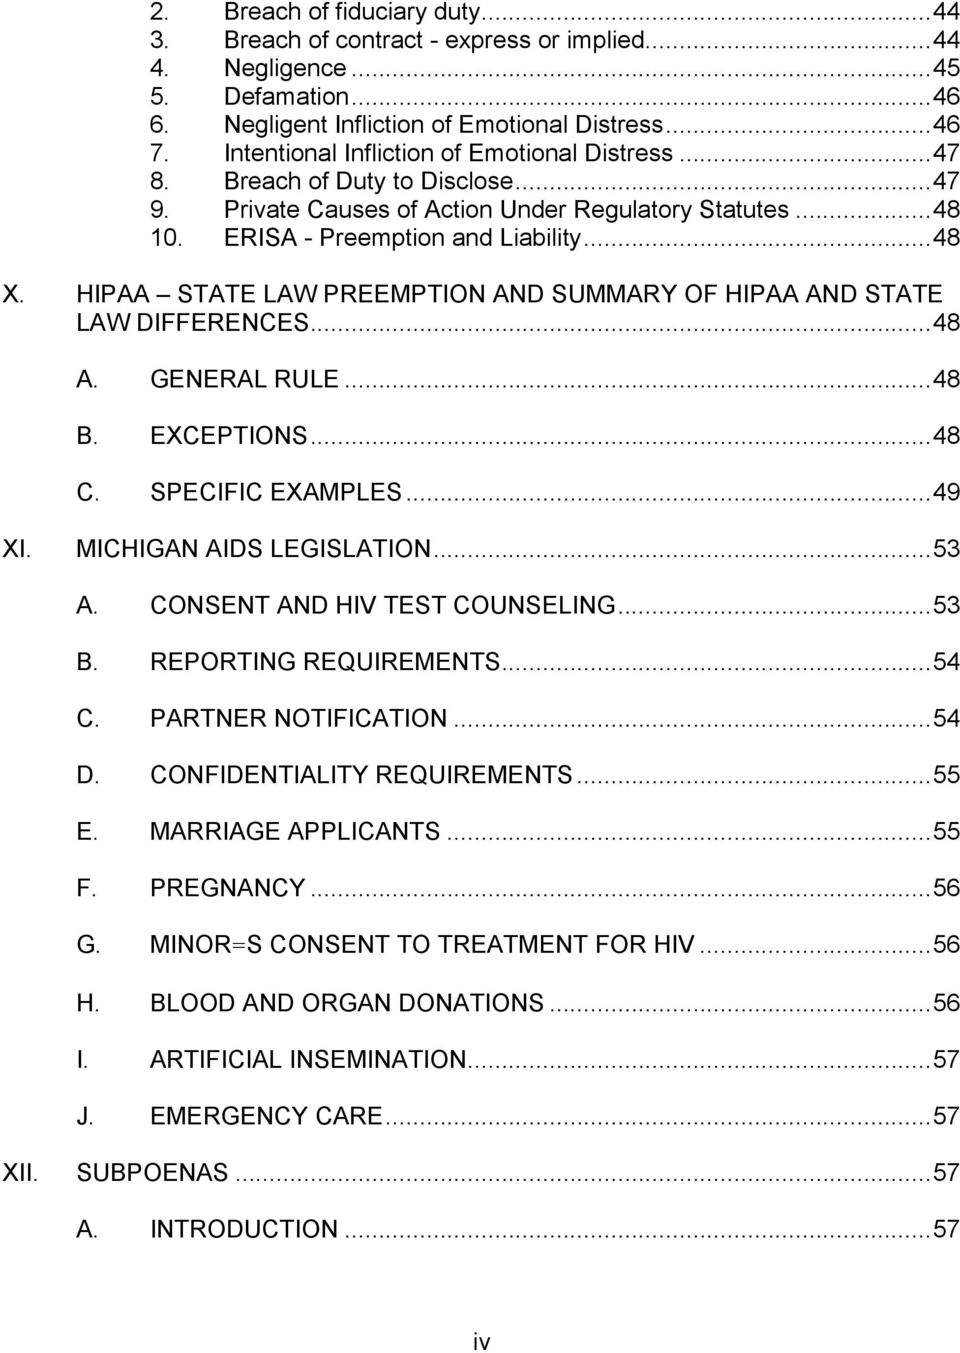 HIPAA STATE LAW PREEMPTION AND SUMMARY OF HIPAA AND STATE LAW DIFFERENCES...48 A. GENERAL RULE...48 B. EXCEPTIONS...48 C. SPECIFIC EXAMPLES...49 XI. MICHIGAN AIDS LEGISLATION...53 A.